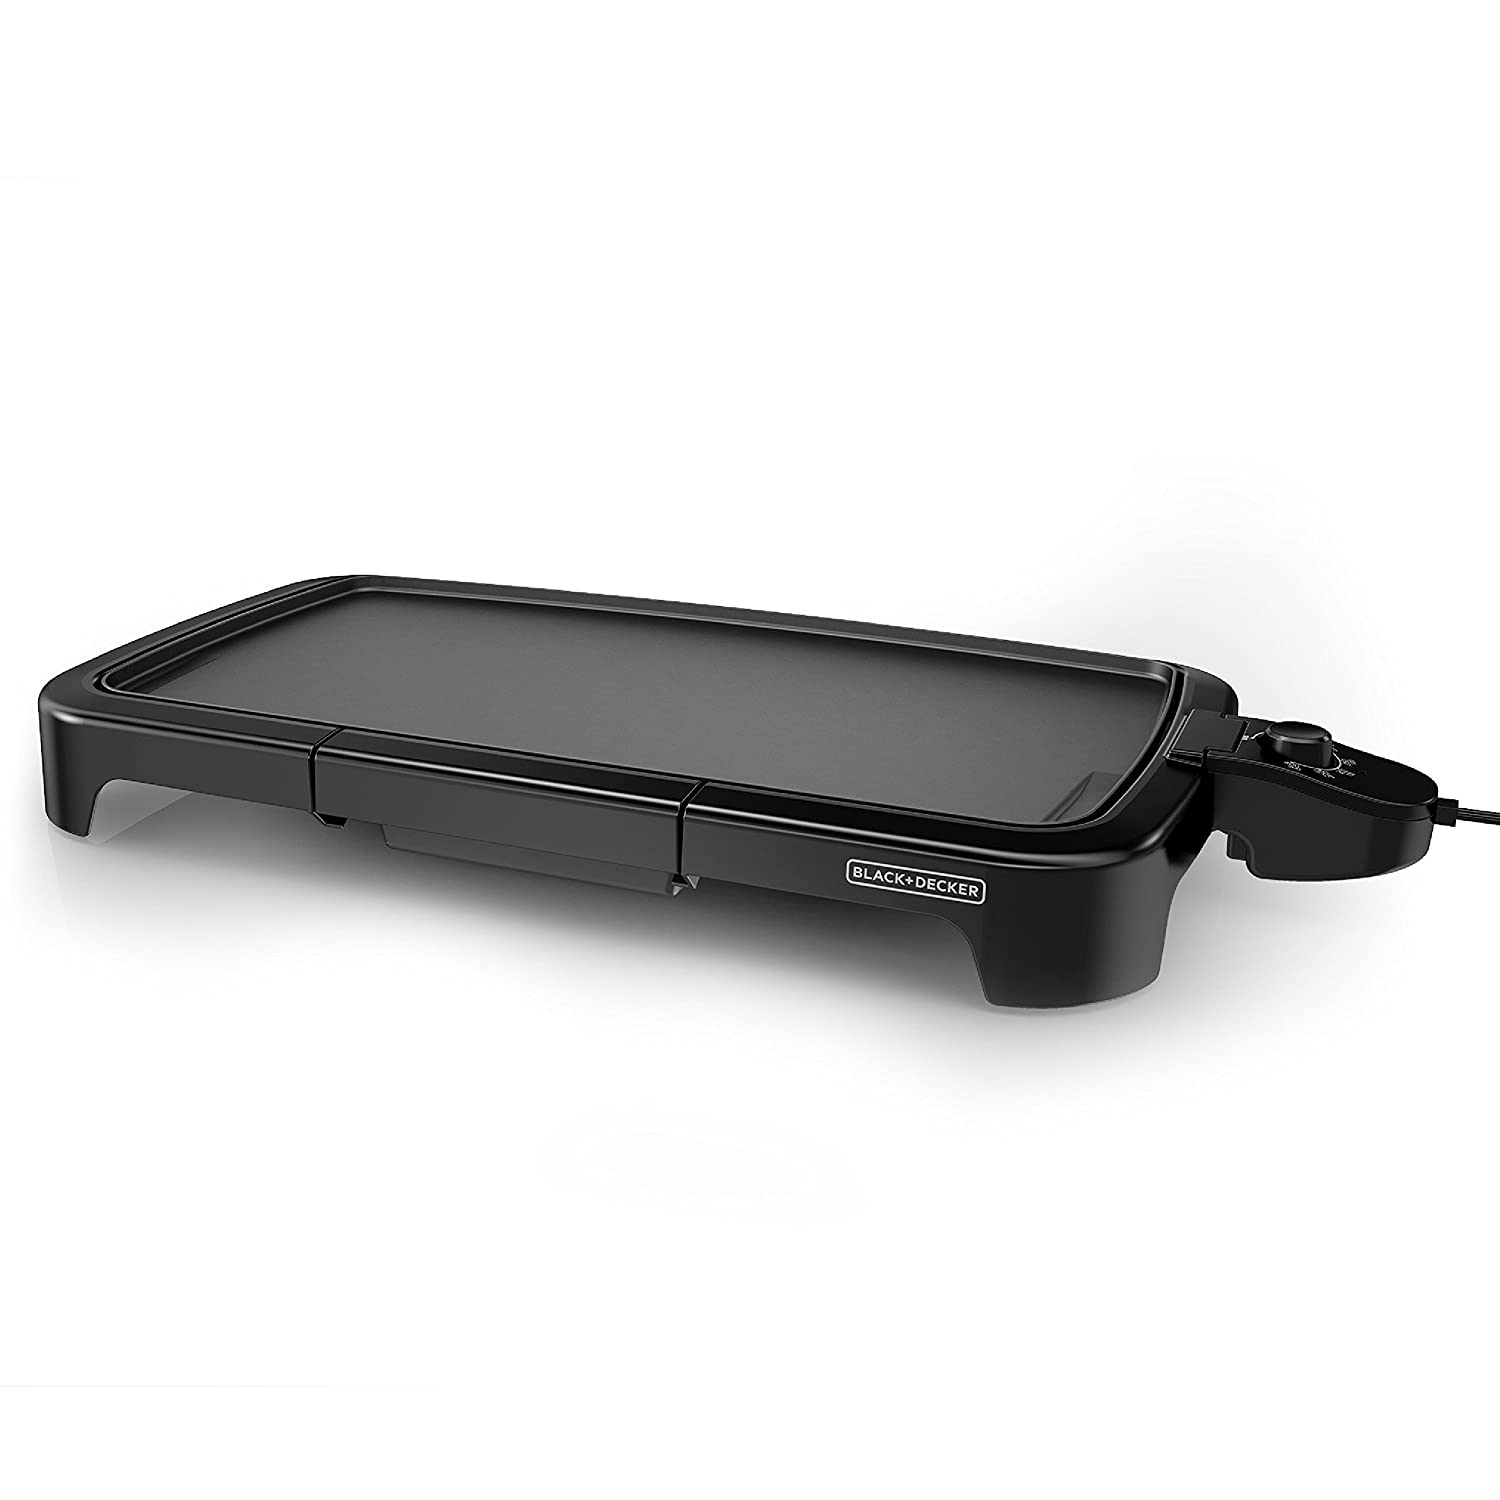 BLACK + DECKER Electric Griddle